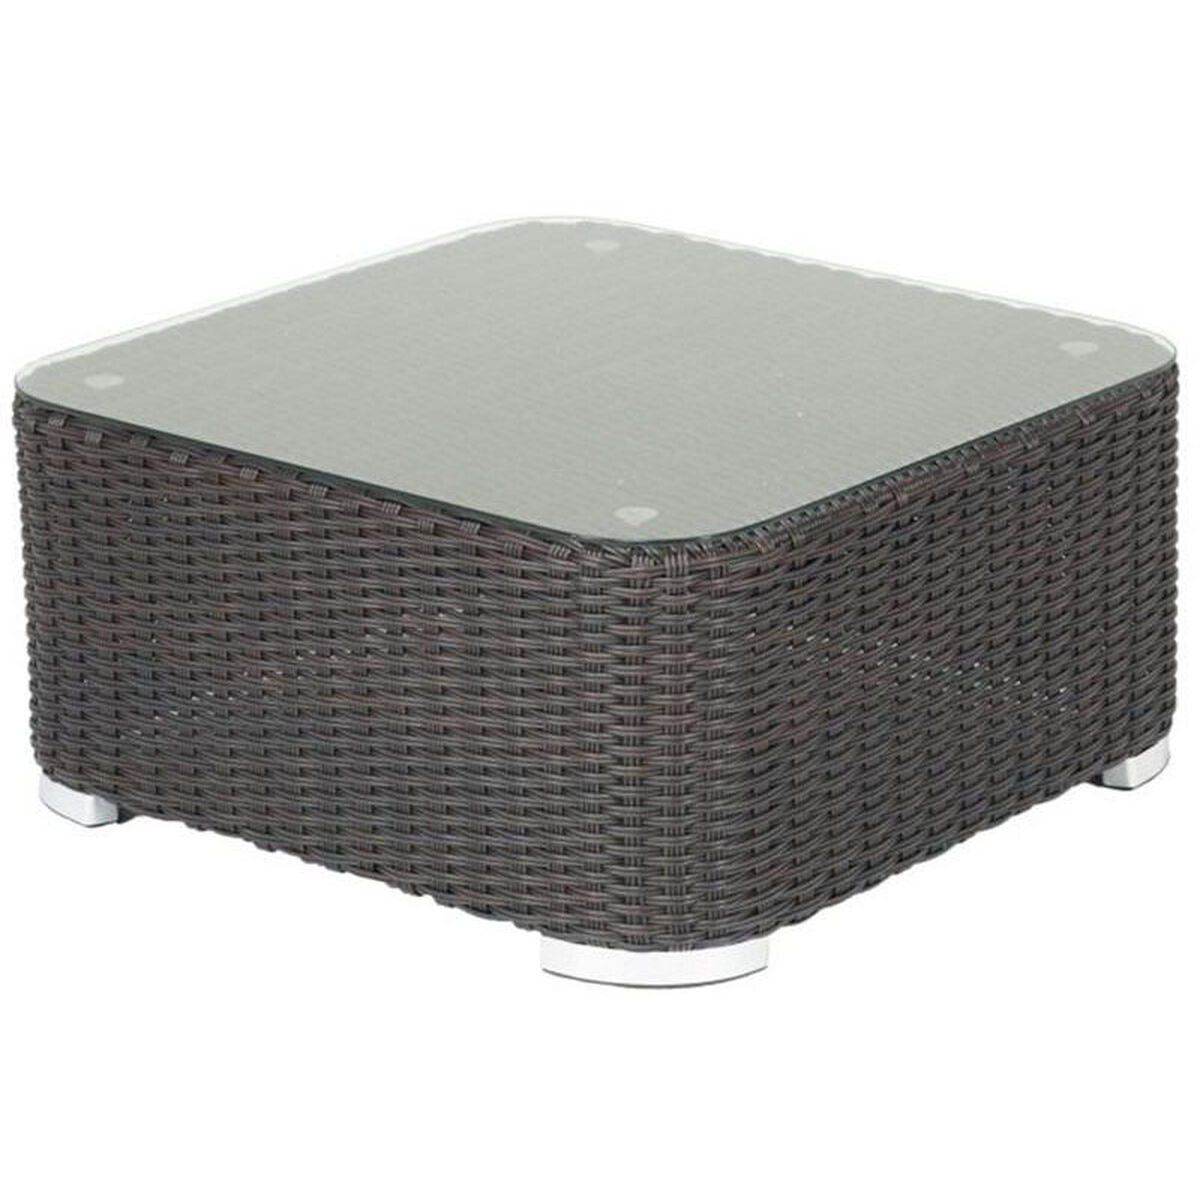 Our Apollo Beach Collection Outdoor Wicker Coffee Table With Glass Top Indo Is On